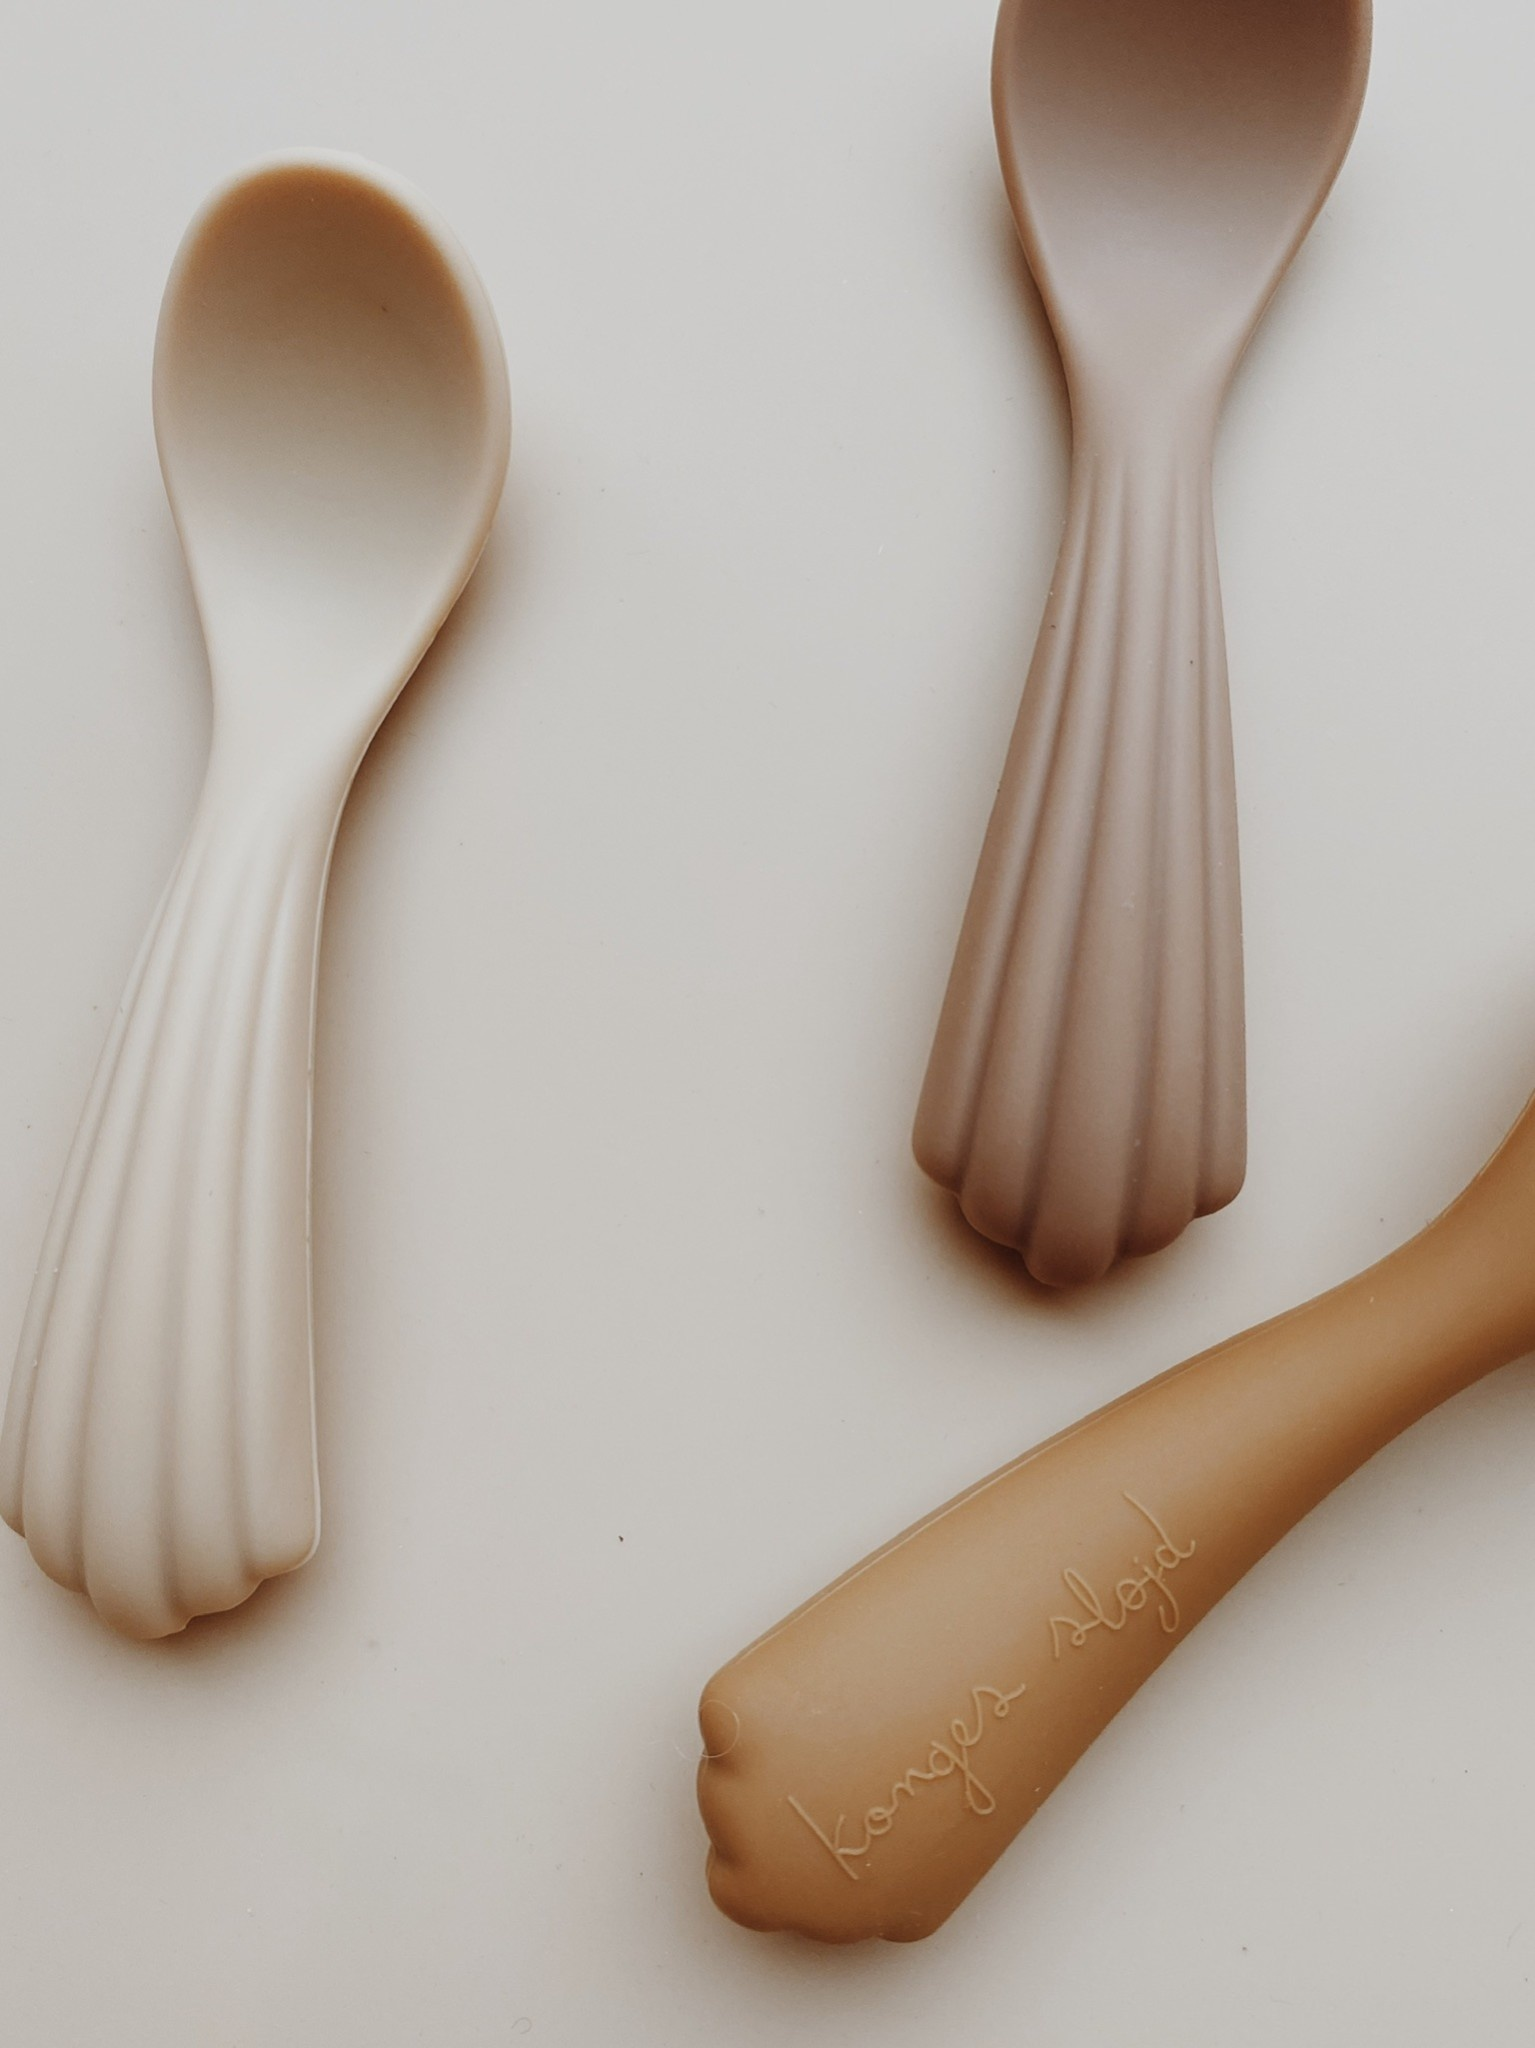 Silicone spoons shell - 3 pack-2